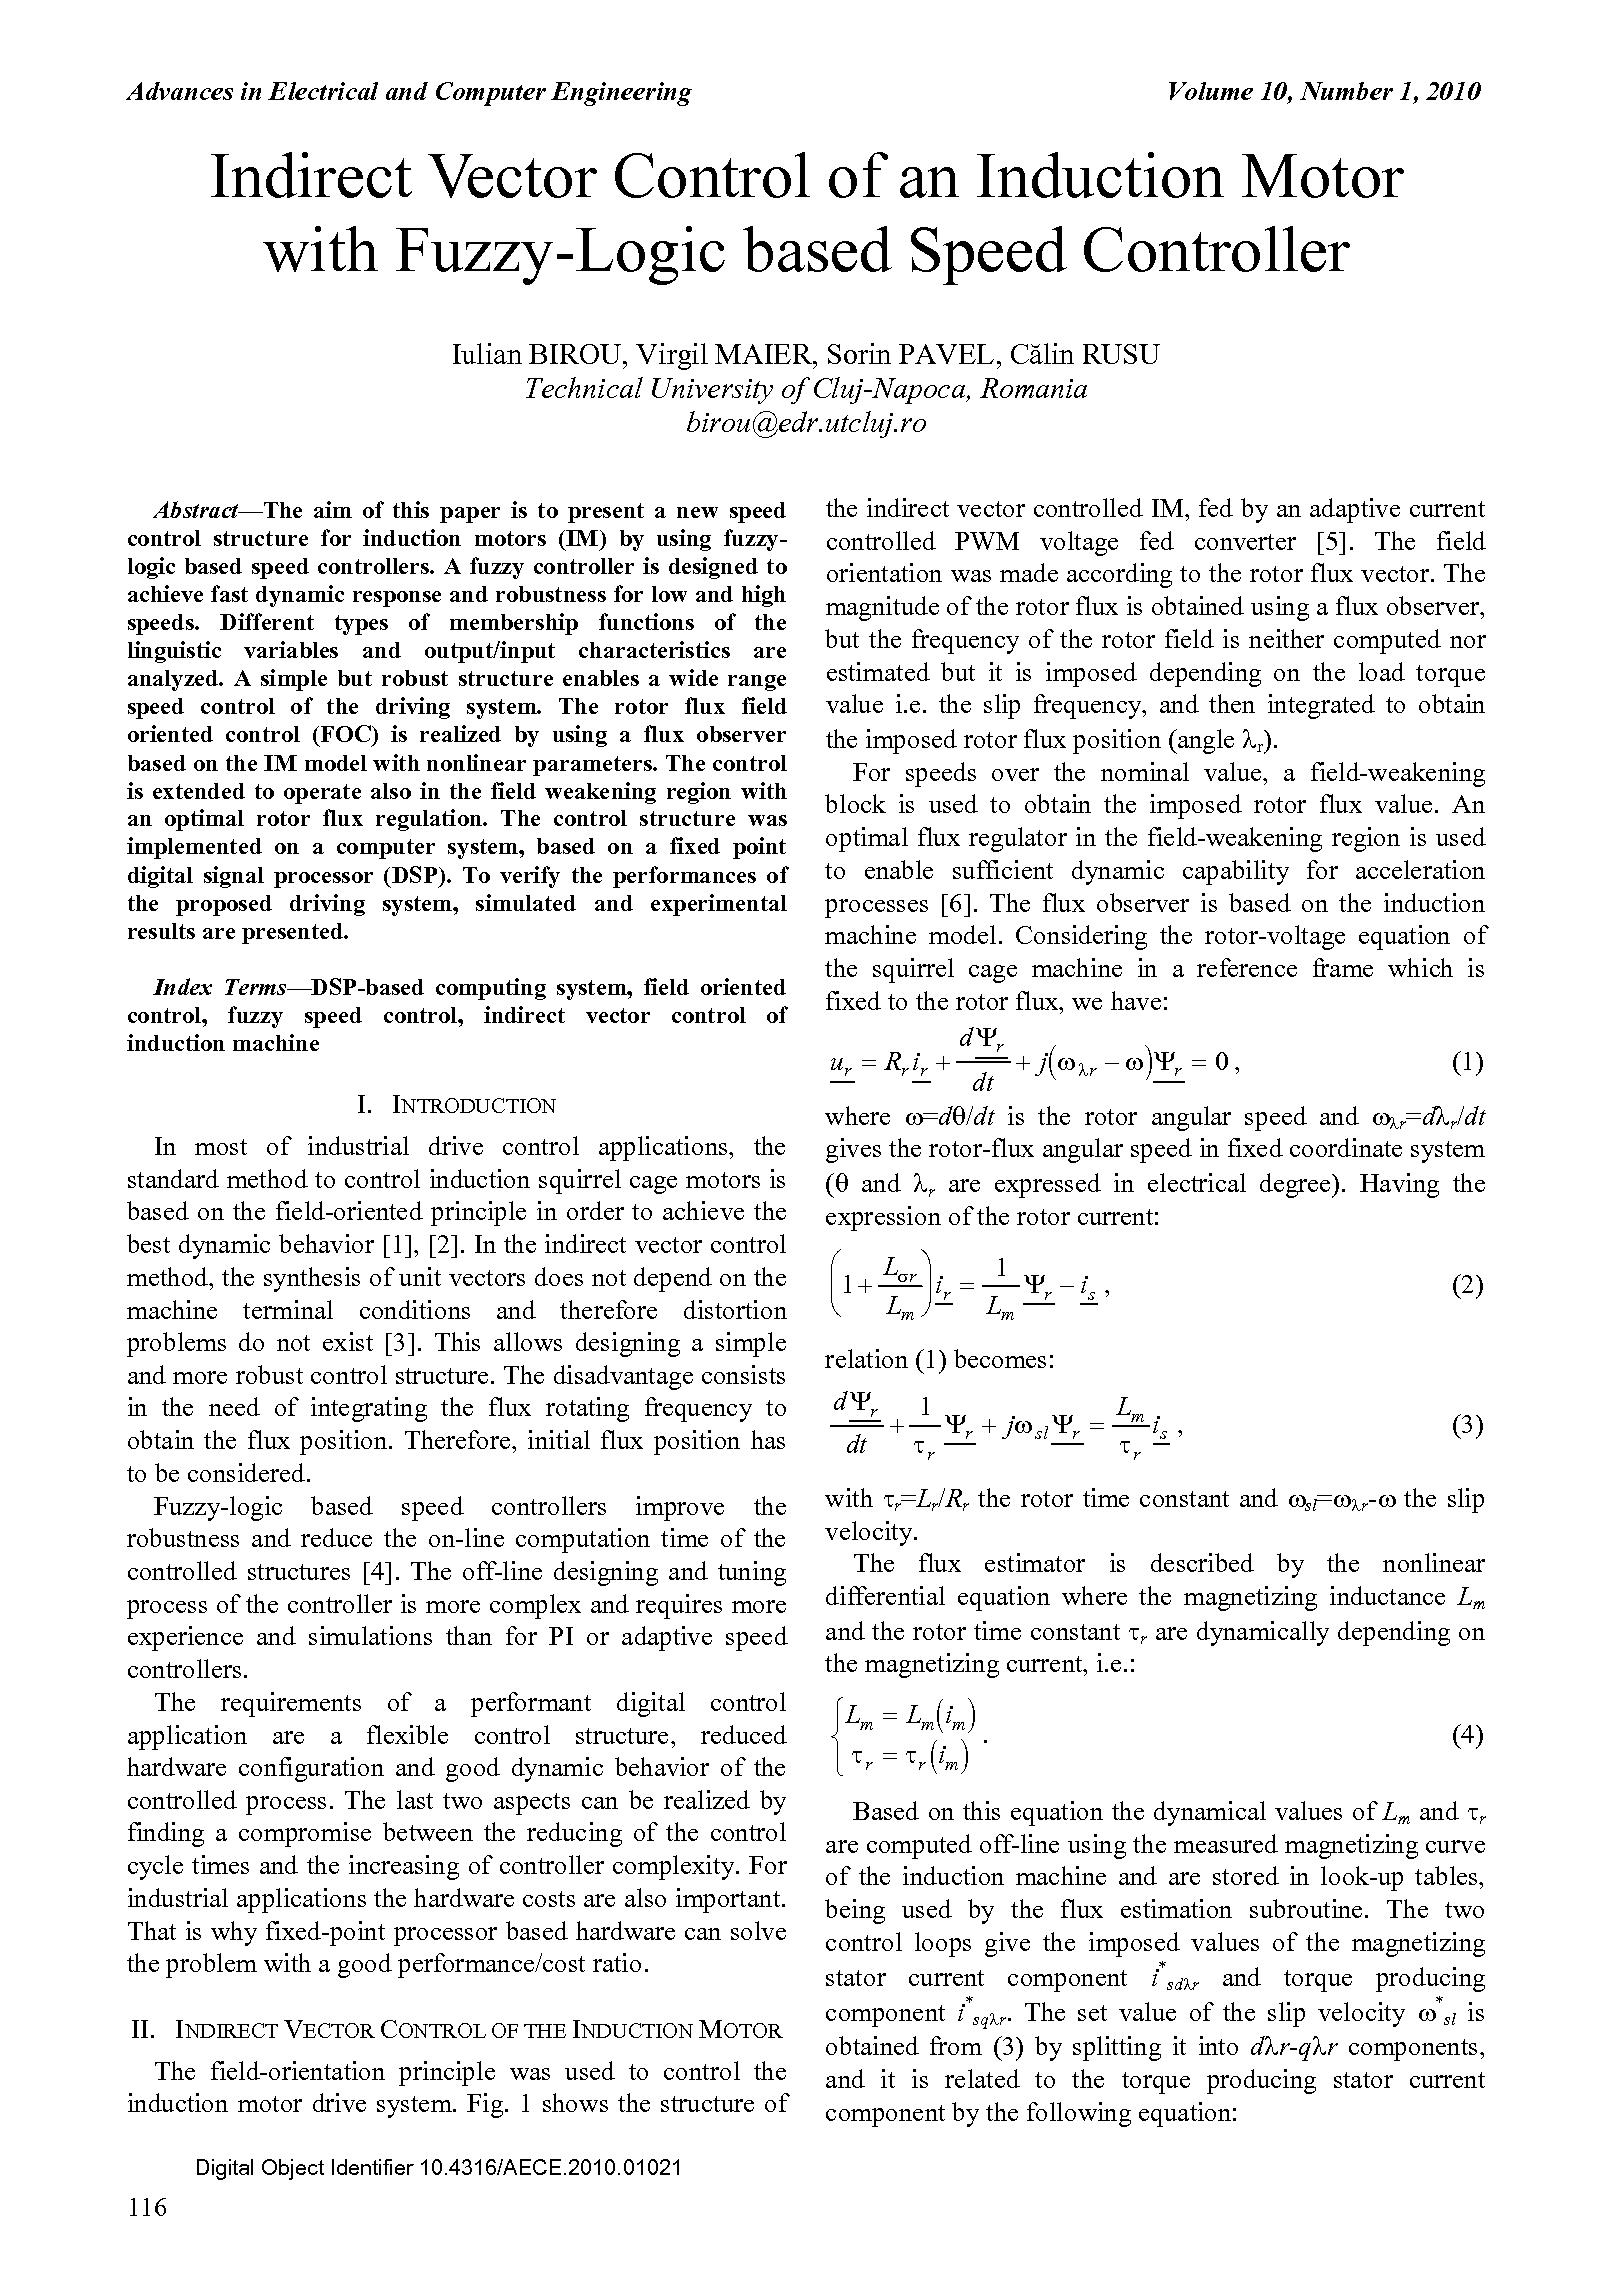 PDF Quickview for paper with DOI:10.4316/AECE.2010.01021